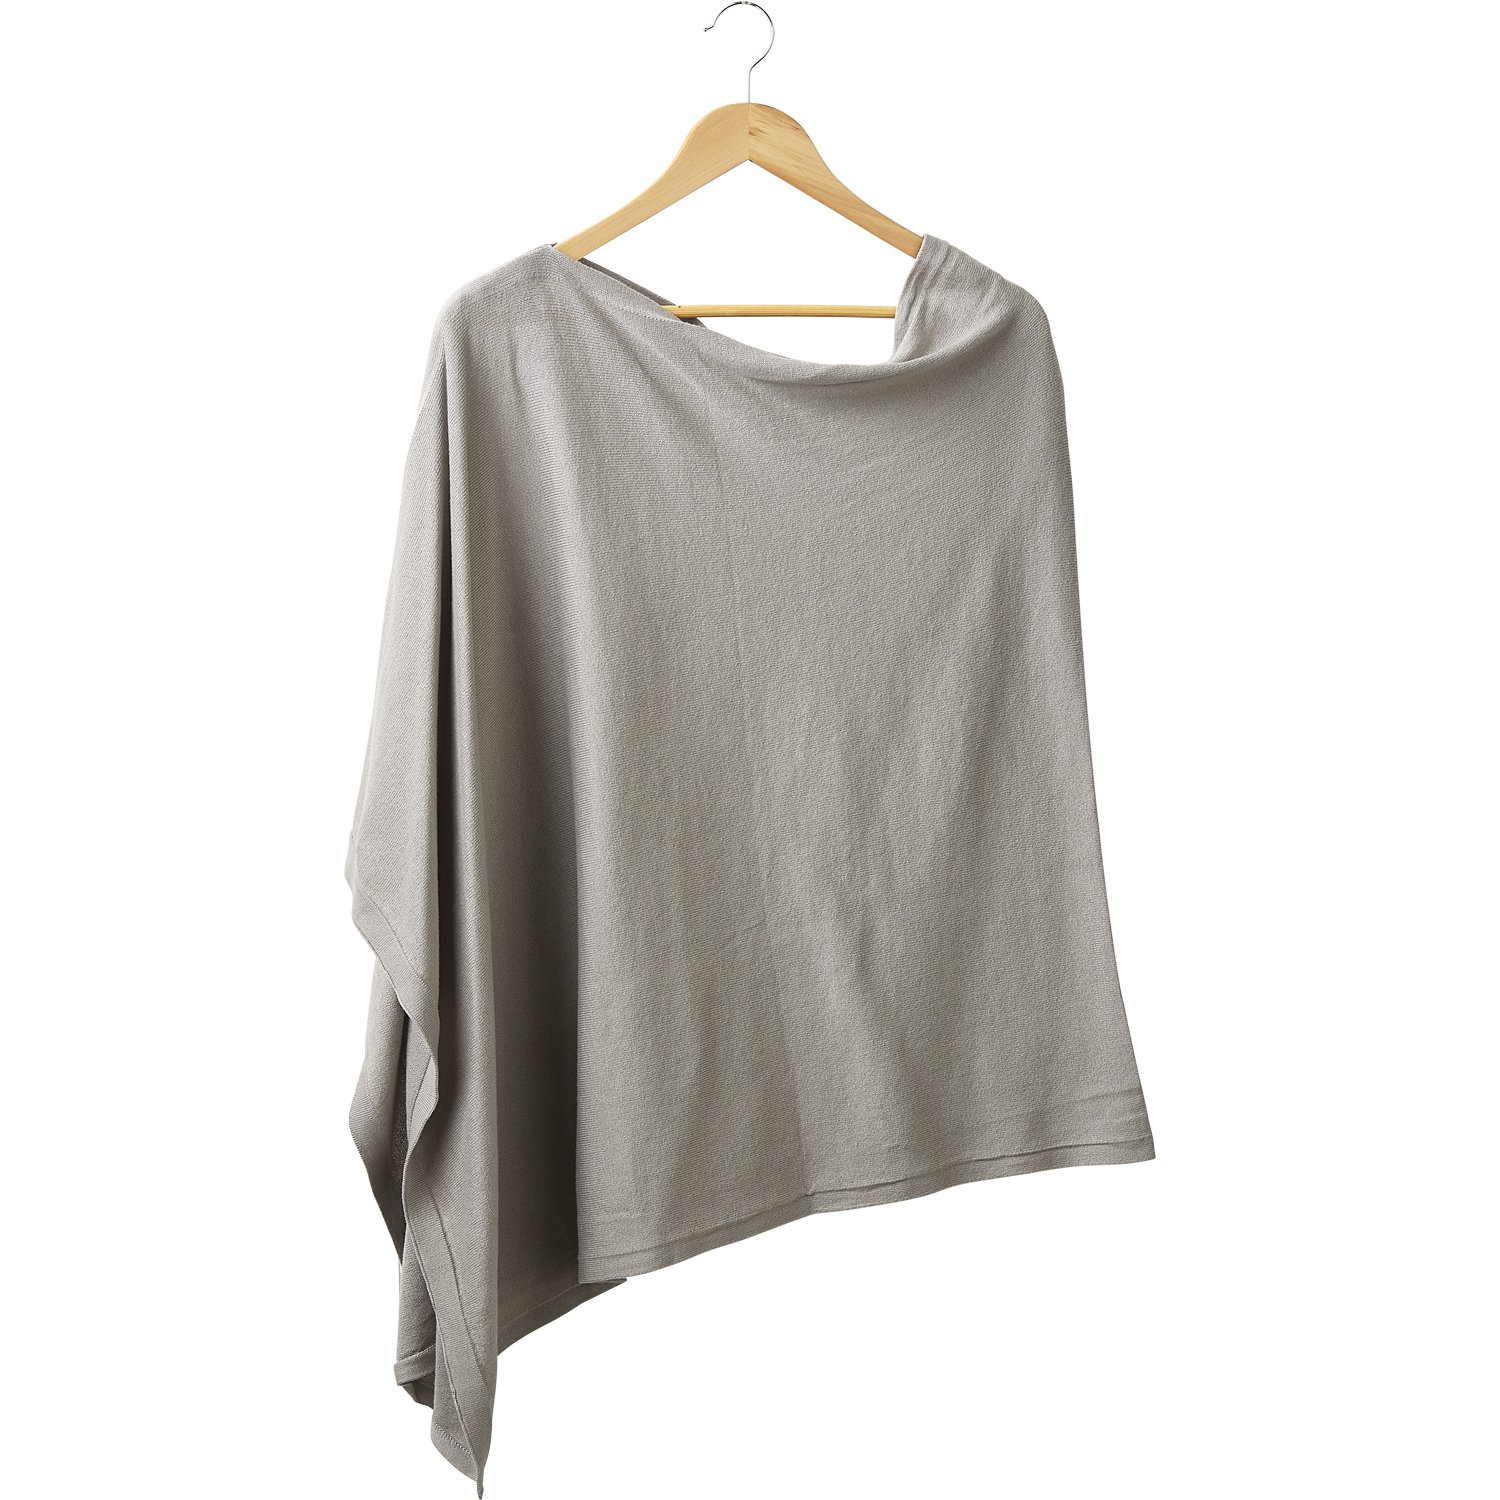 Tickled Pink Womens Everyday Basics Elegant Classic Solid Cotton Poncho